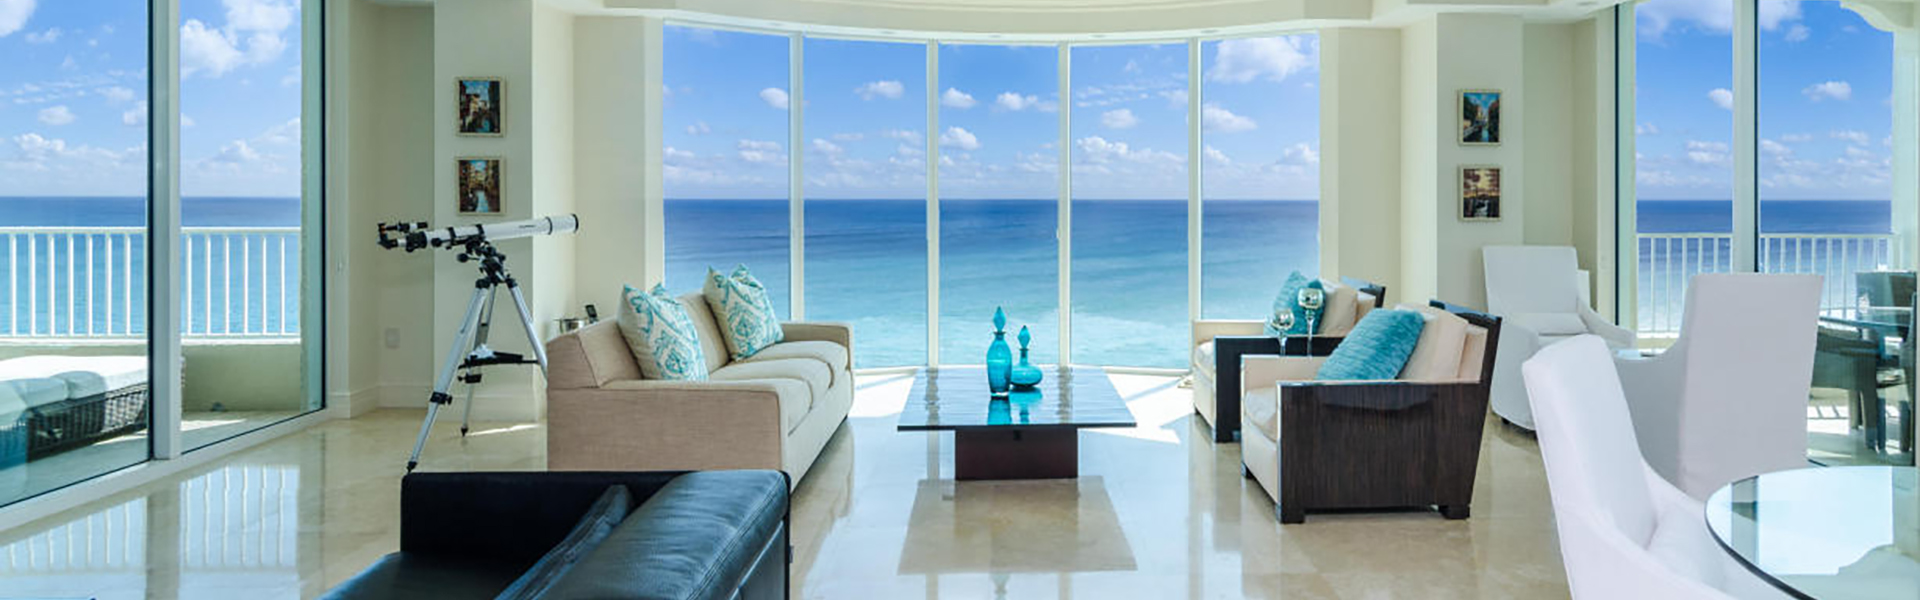 Delray Beach Real Estate Maket Trends